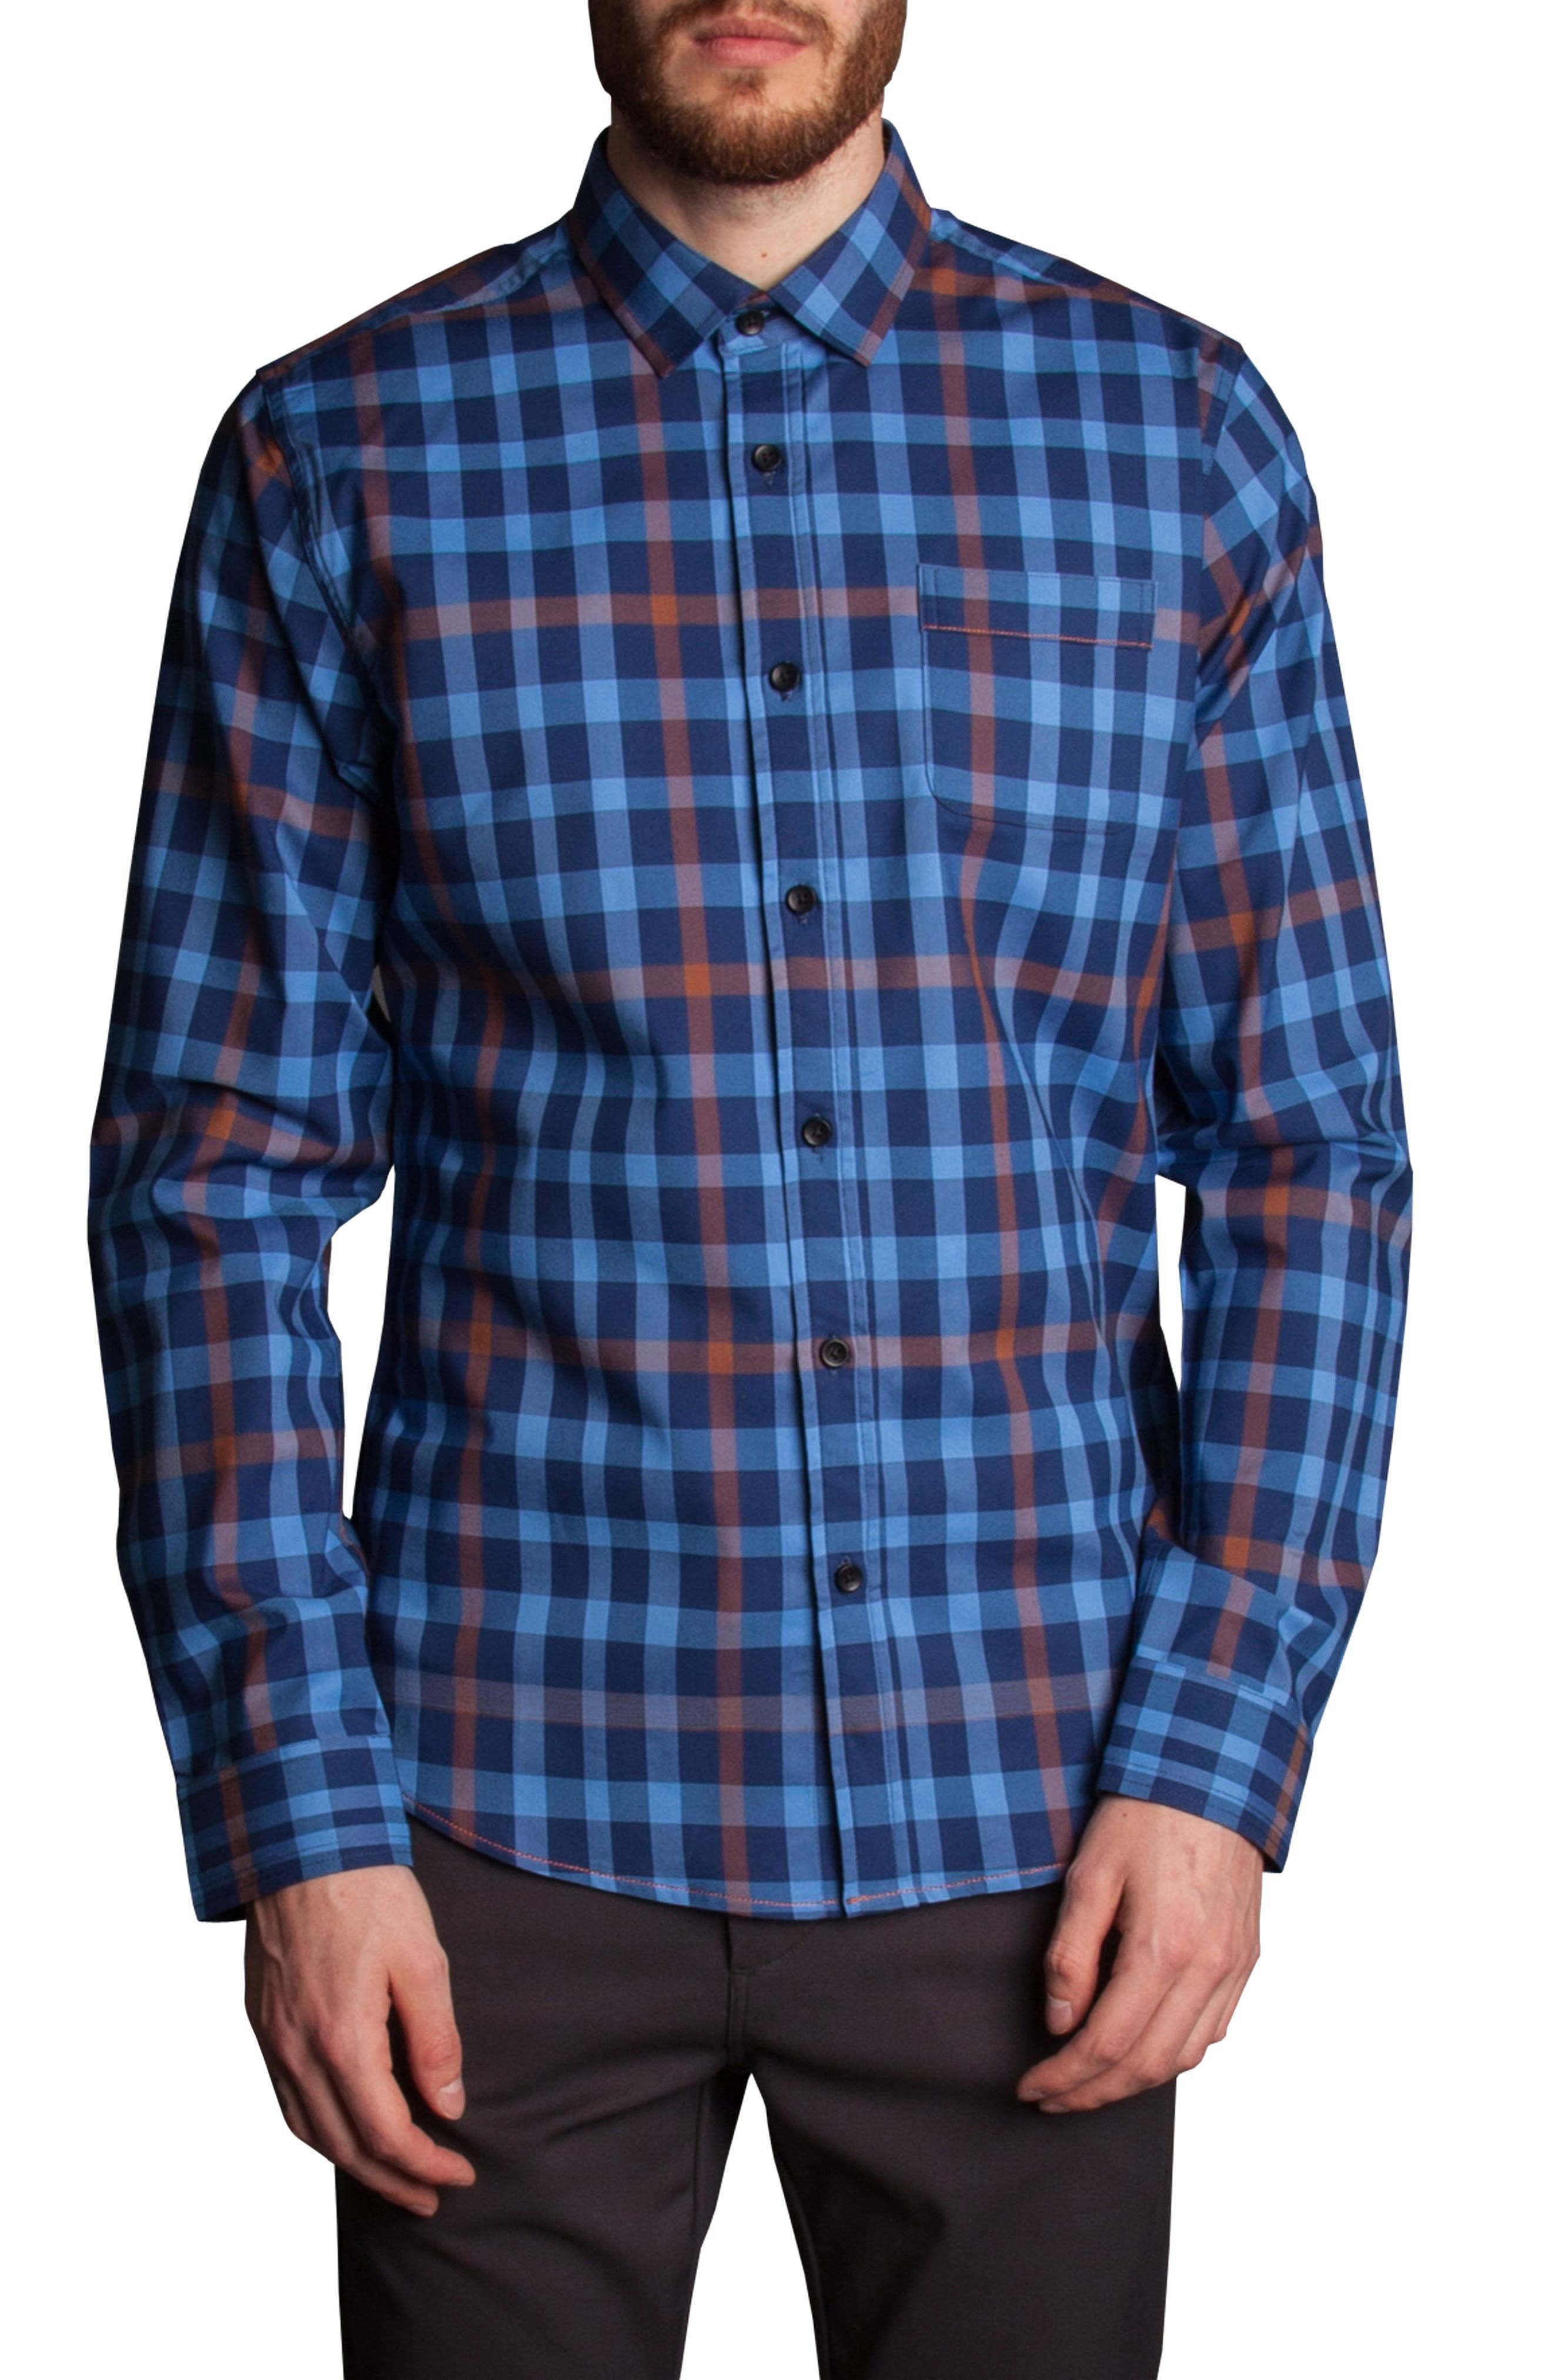 Alternate Image 1 Selected - Descendant of Thieves Plaid Sport Shirt